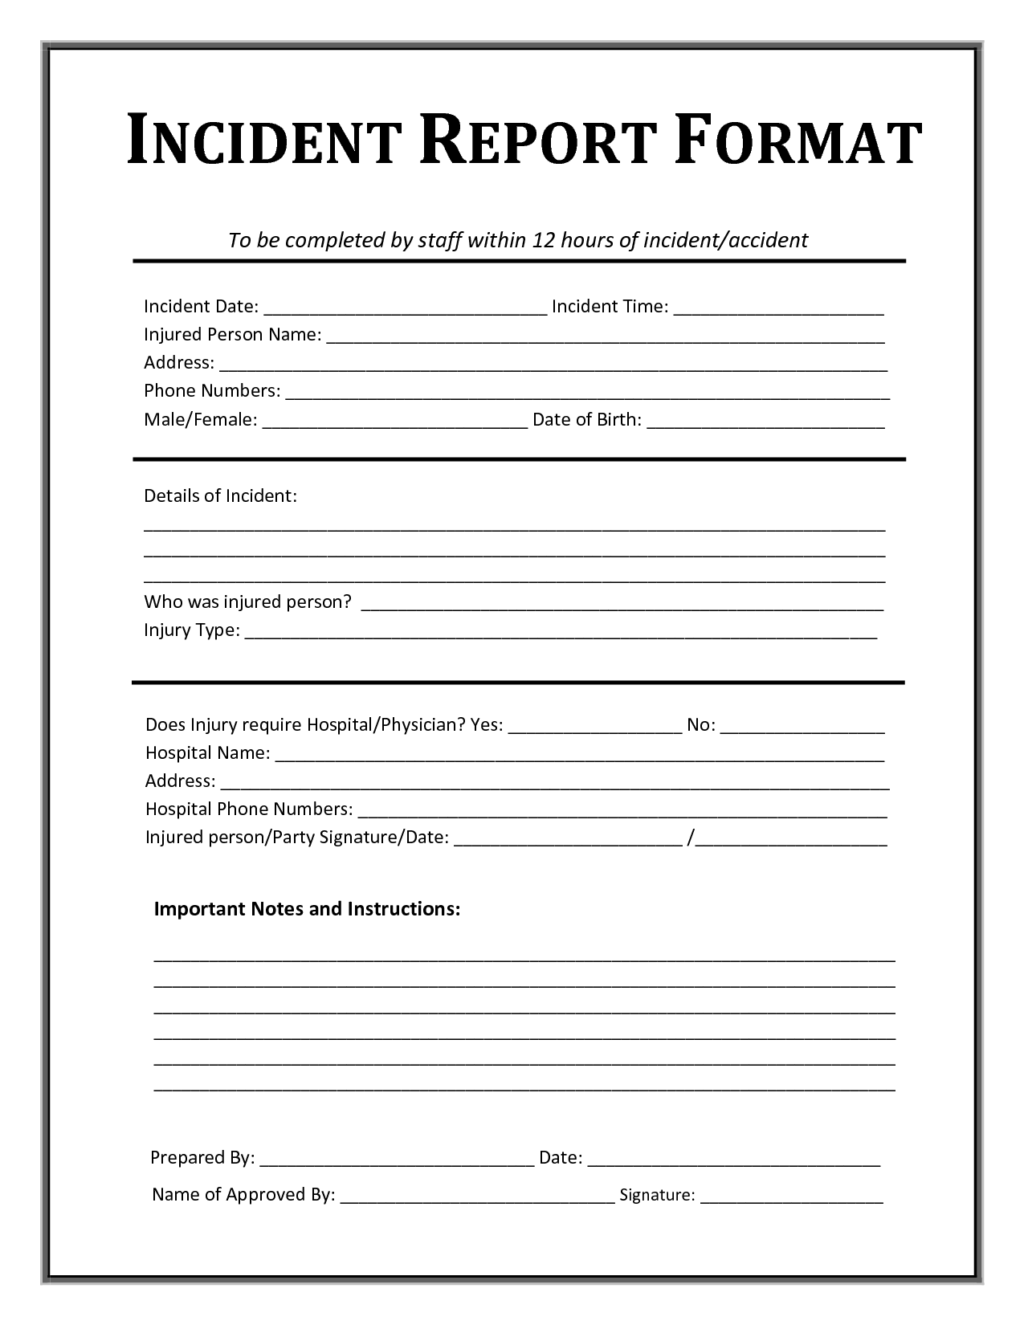 fraud incident report template   Romeo.landinez.co